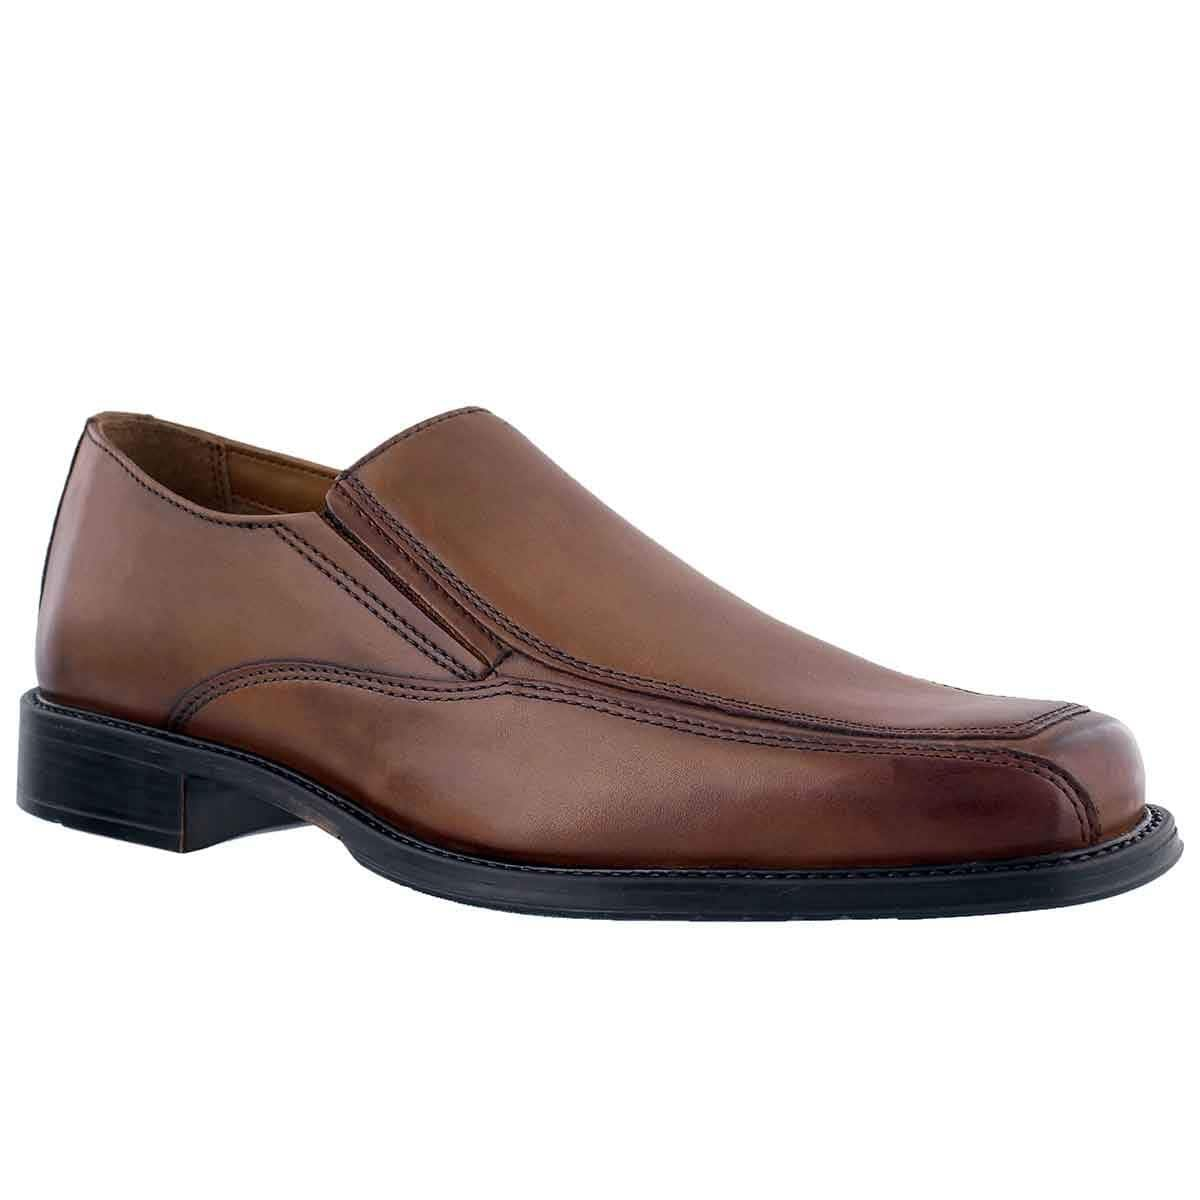 CLARKS Mens Driggs Free Loafer, Size: 8.5 D(M) US, Color Mid Brown Leather